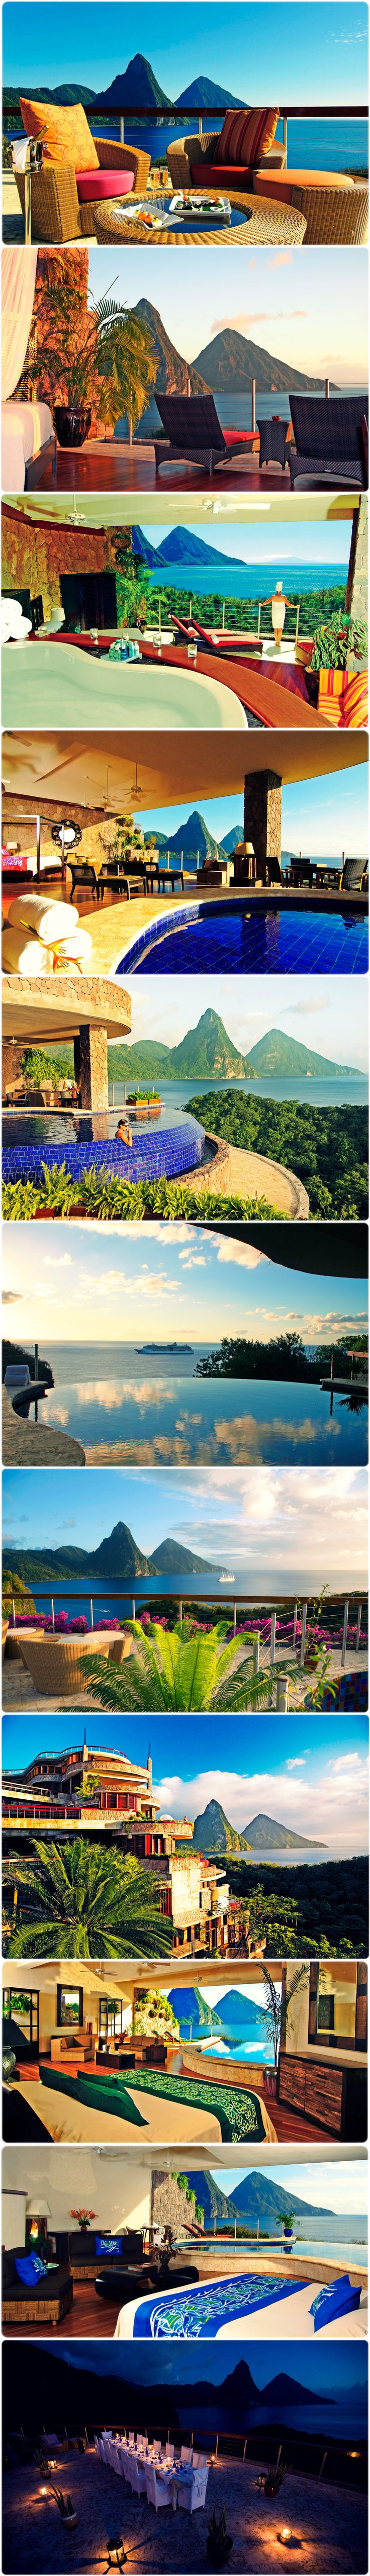 "Jade Mountain Resort Hotel, Soufriere! >>> http://www.otel.com/hotels/jade_mountain_resort_hotel_soufriere.htm?sm=pinterest  Use the code ""UPYRPW15"" while making your reservation on otel.com, get 10% #discount"